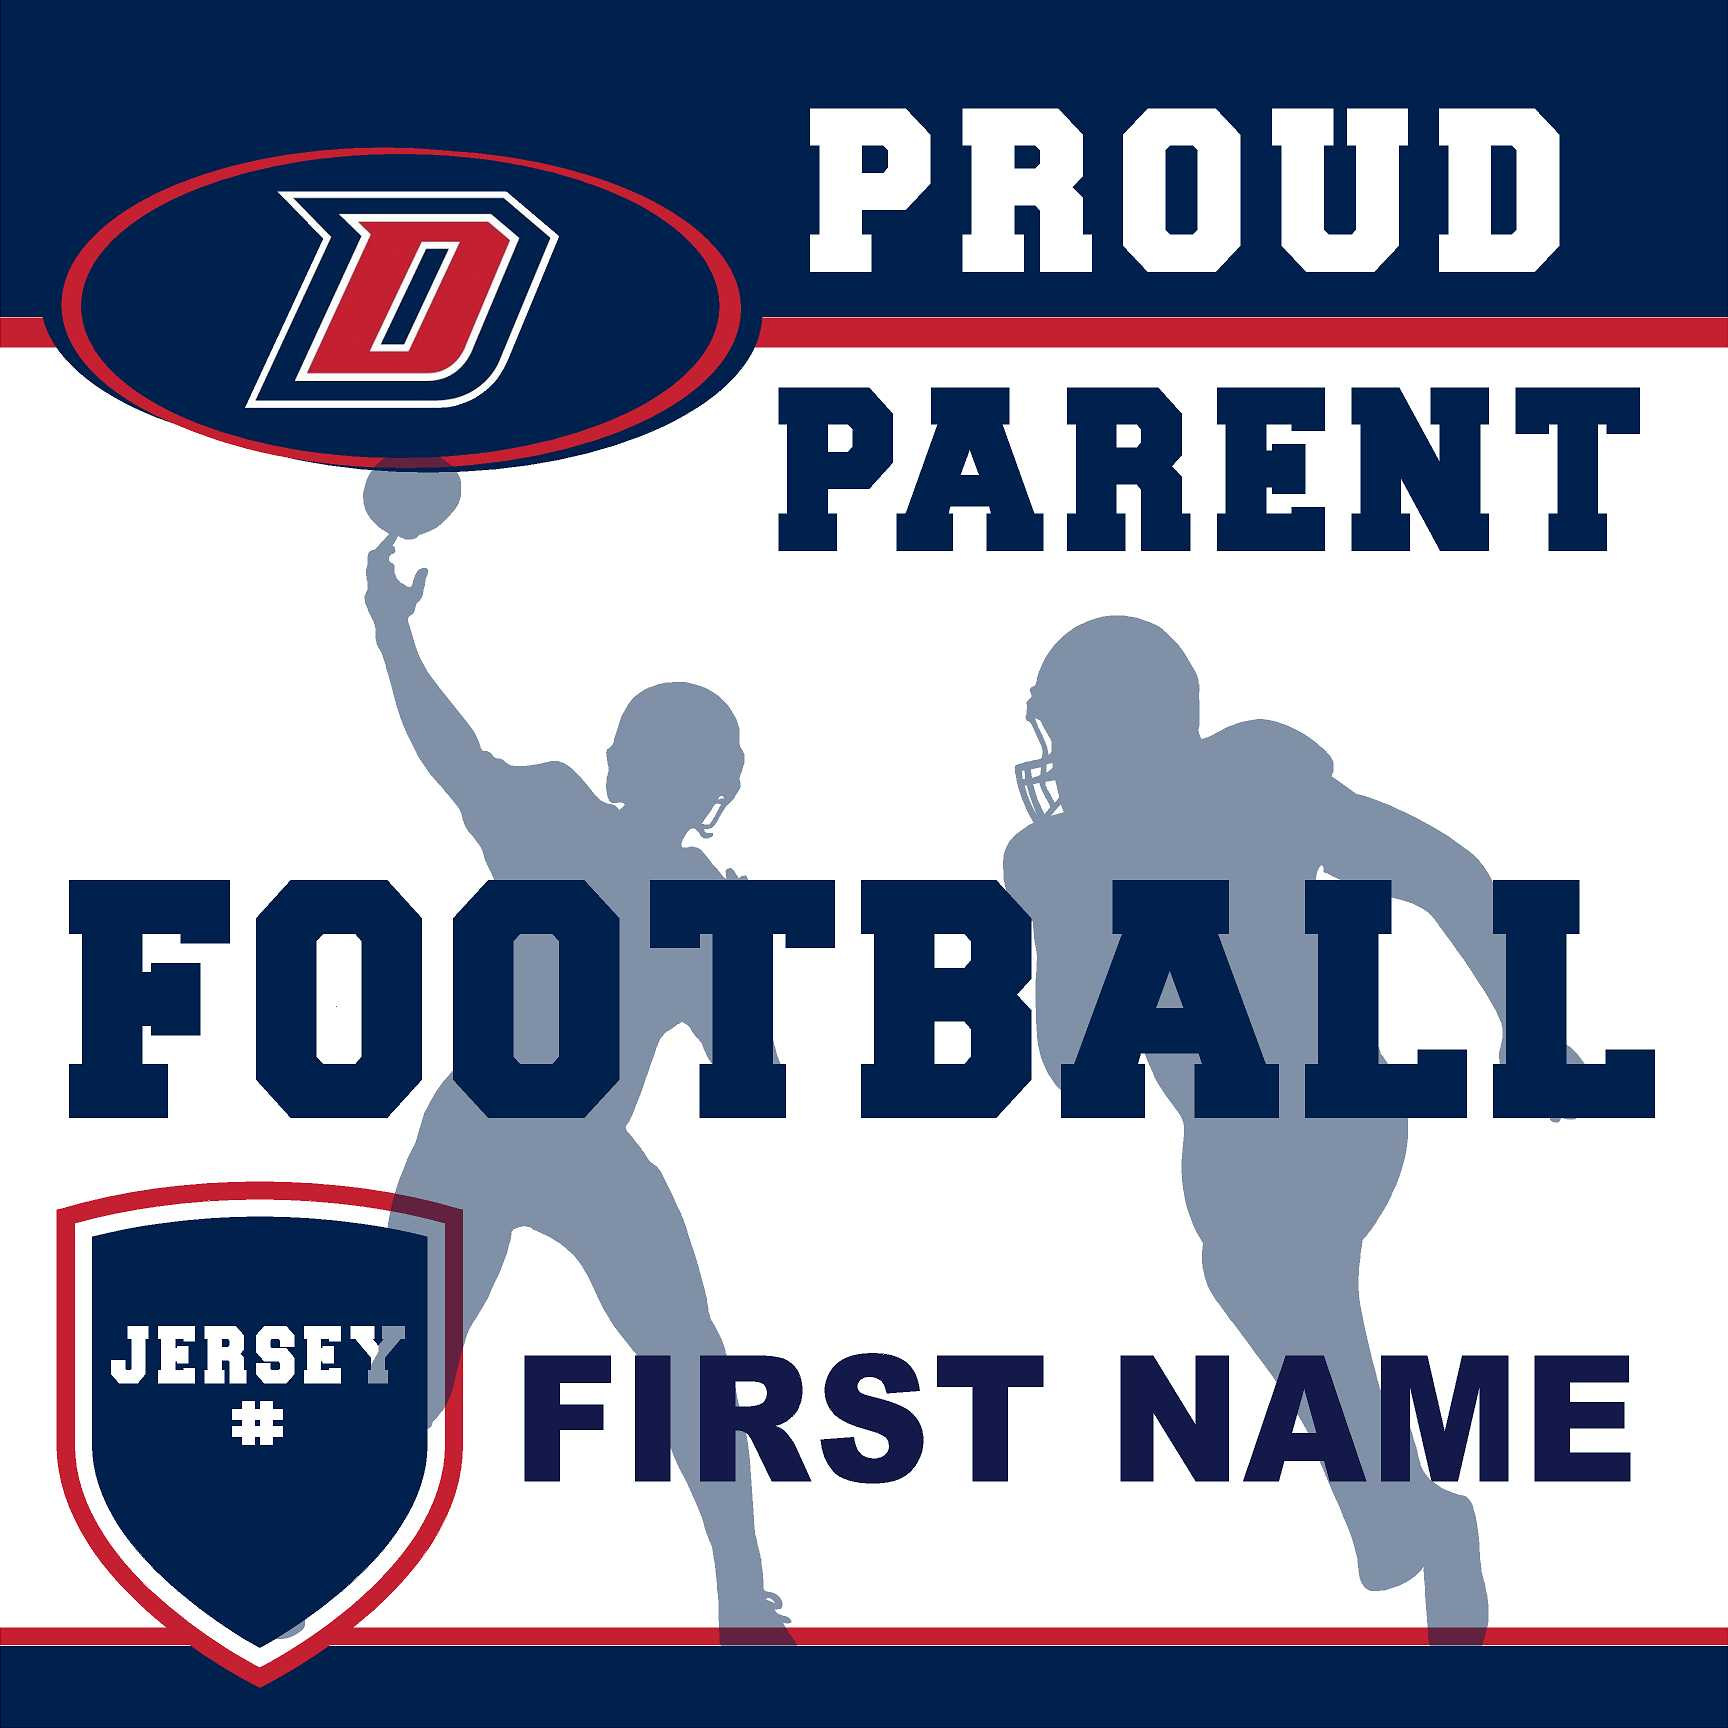 Dublin High School Football (Parent with Jersey #) 24x24 Yard Sign (includes installation in your yard)